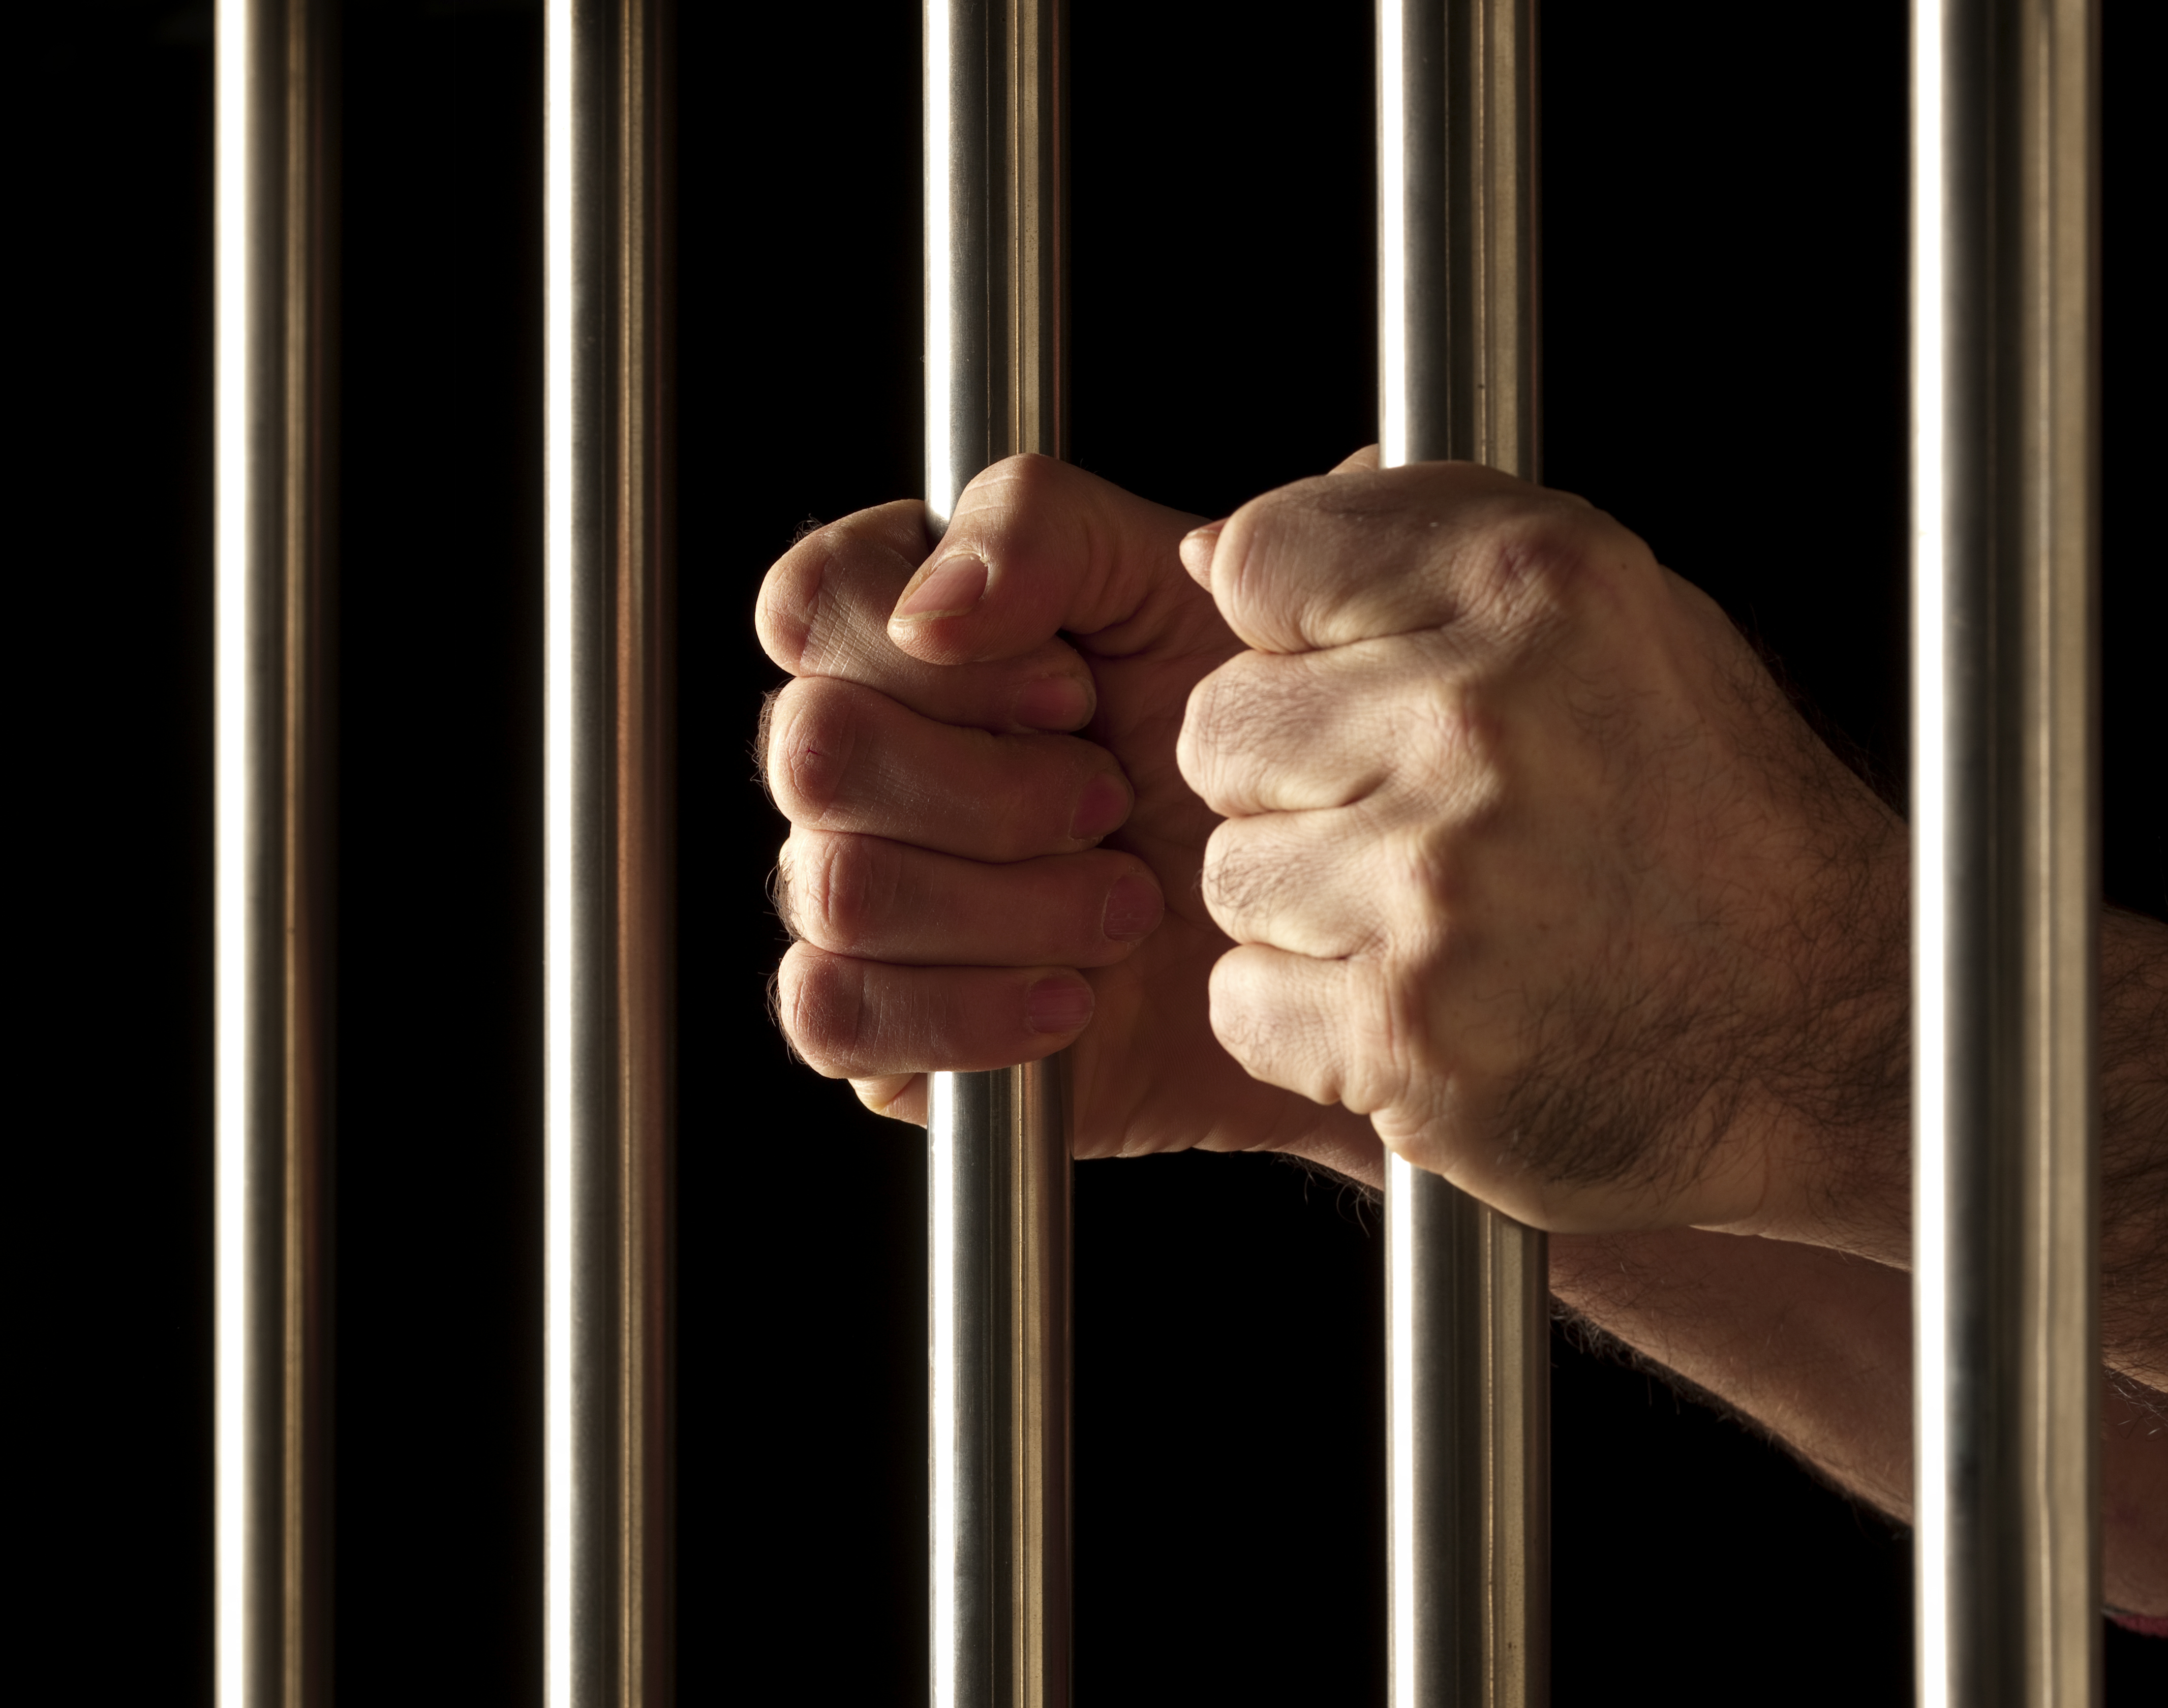 criminal sentencing For other dangerous felonies, sentencing depends on whether it is a first or repeat offense in addition, arizona includes a second set of sentencing guidelines for offenders accused of multiple offenses that occurred at different times, but were tried together.